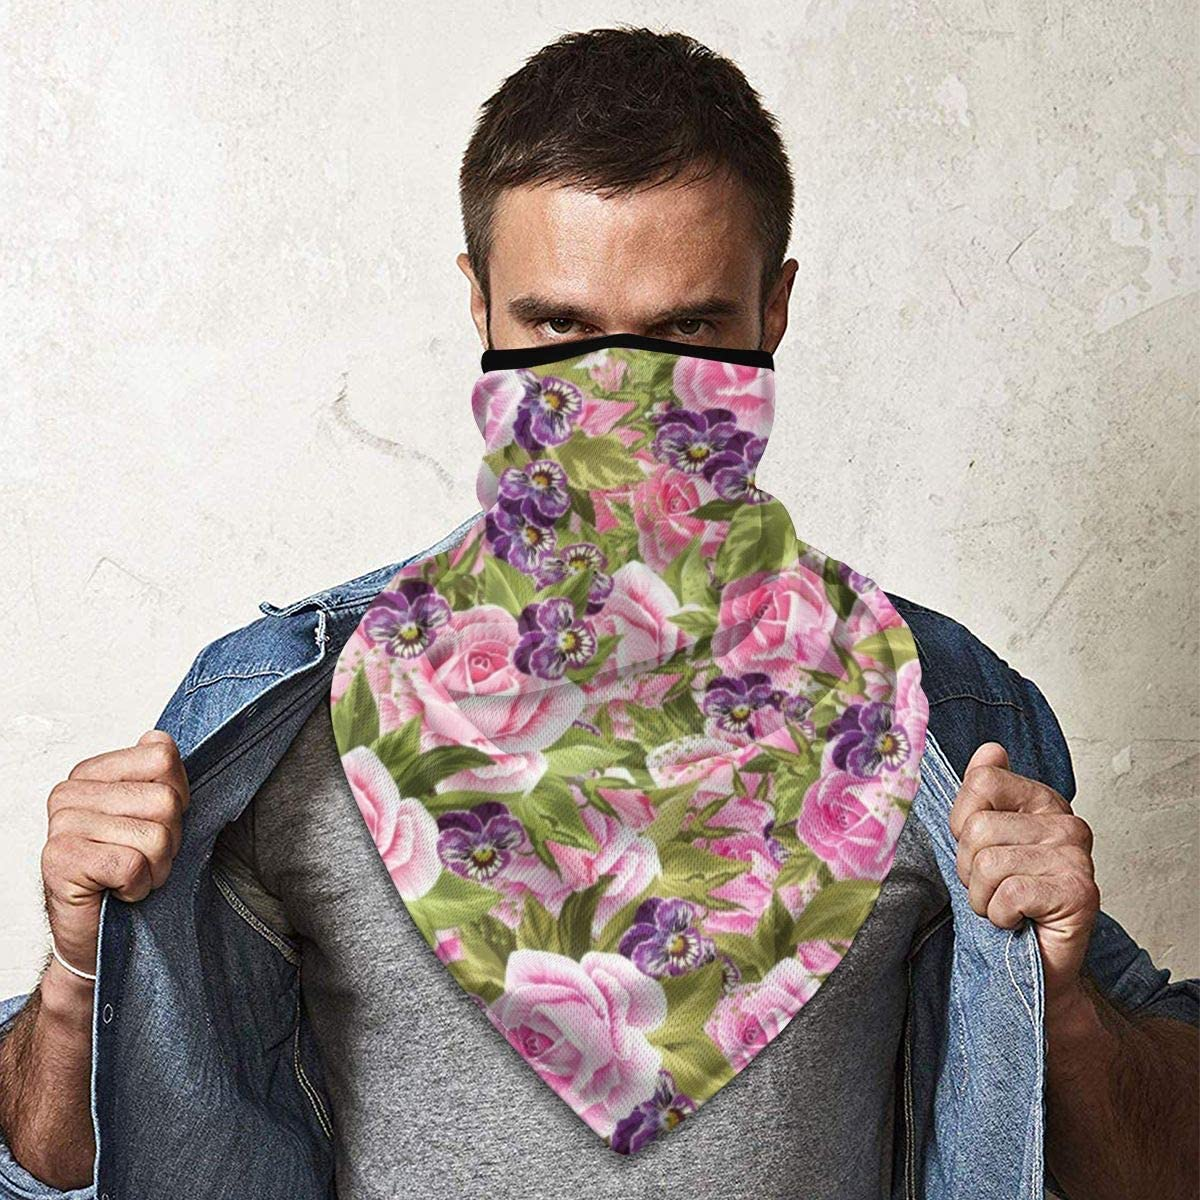 Wind-Resistant Face Mask/& Neck Gaiter,Balaclava Ski Masks,Breathable Tactical Hood,Windproof Face Warmer for Running,Motorcycling,Hiking-Pink and Lilac Flowers Pattern